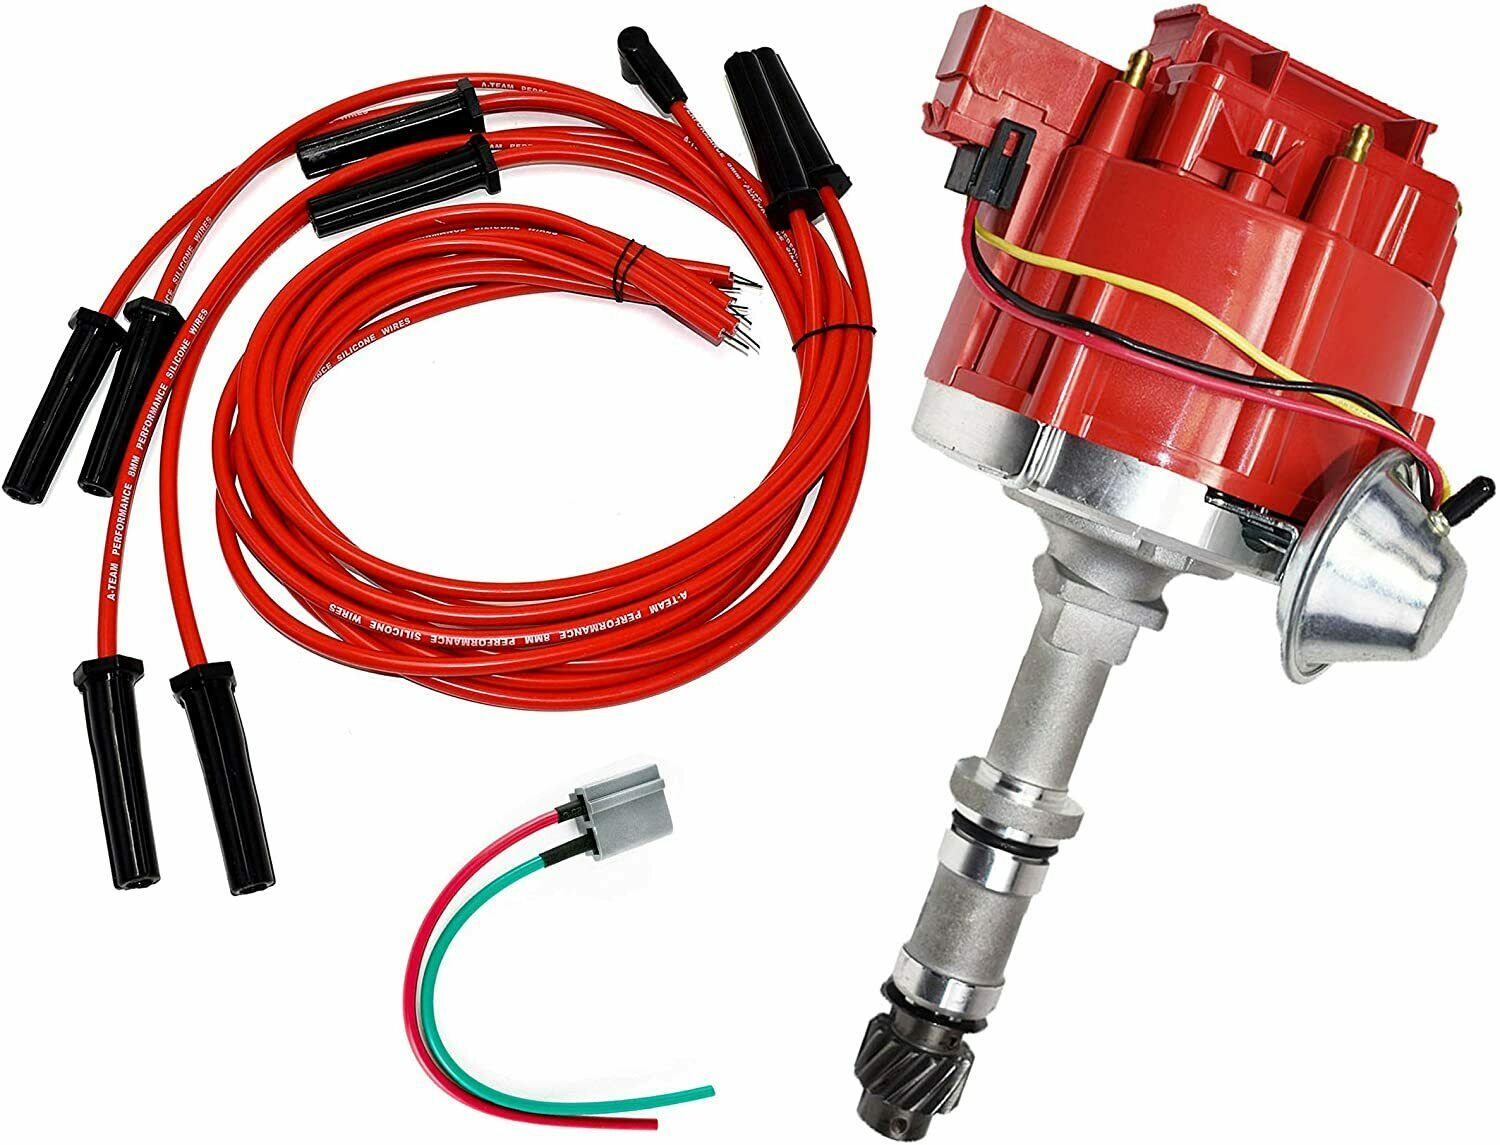 Buick Odd Fire HEI Distributor 231 3.8L V6 225 3.7L Dauntless 8mm Spark Plug Kit